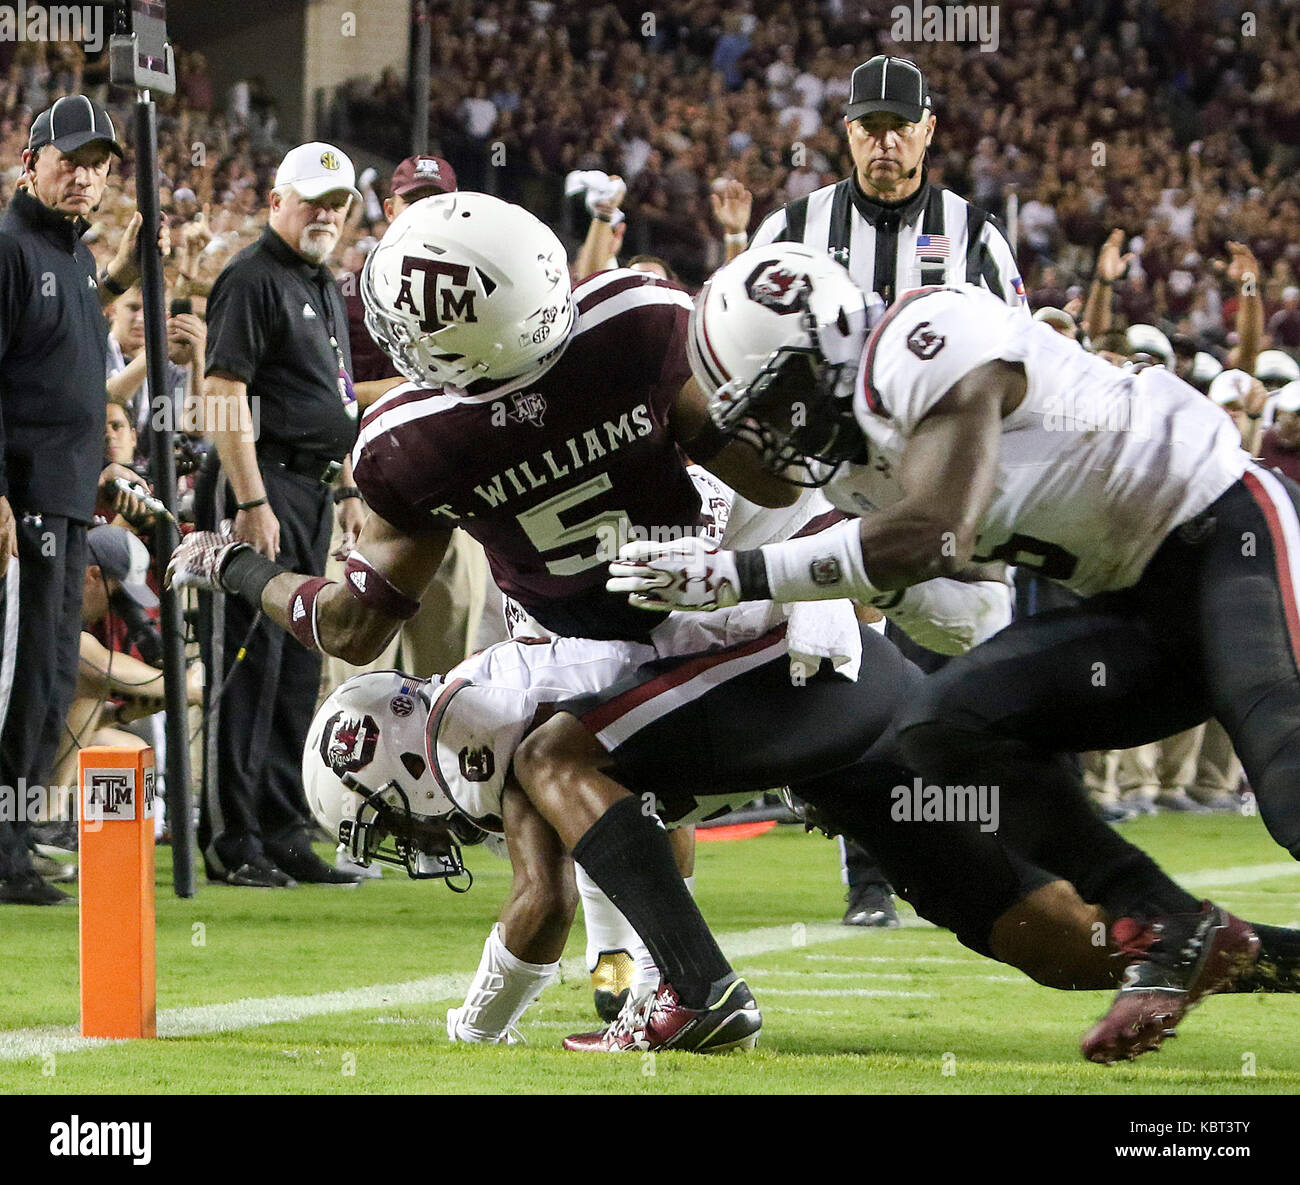 September 30, 2017: Texas A&M Aggies running back Trayveon Williams (5) is stopped short of the goal line by - Stock Image